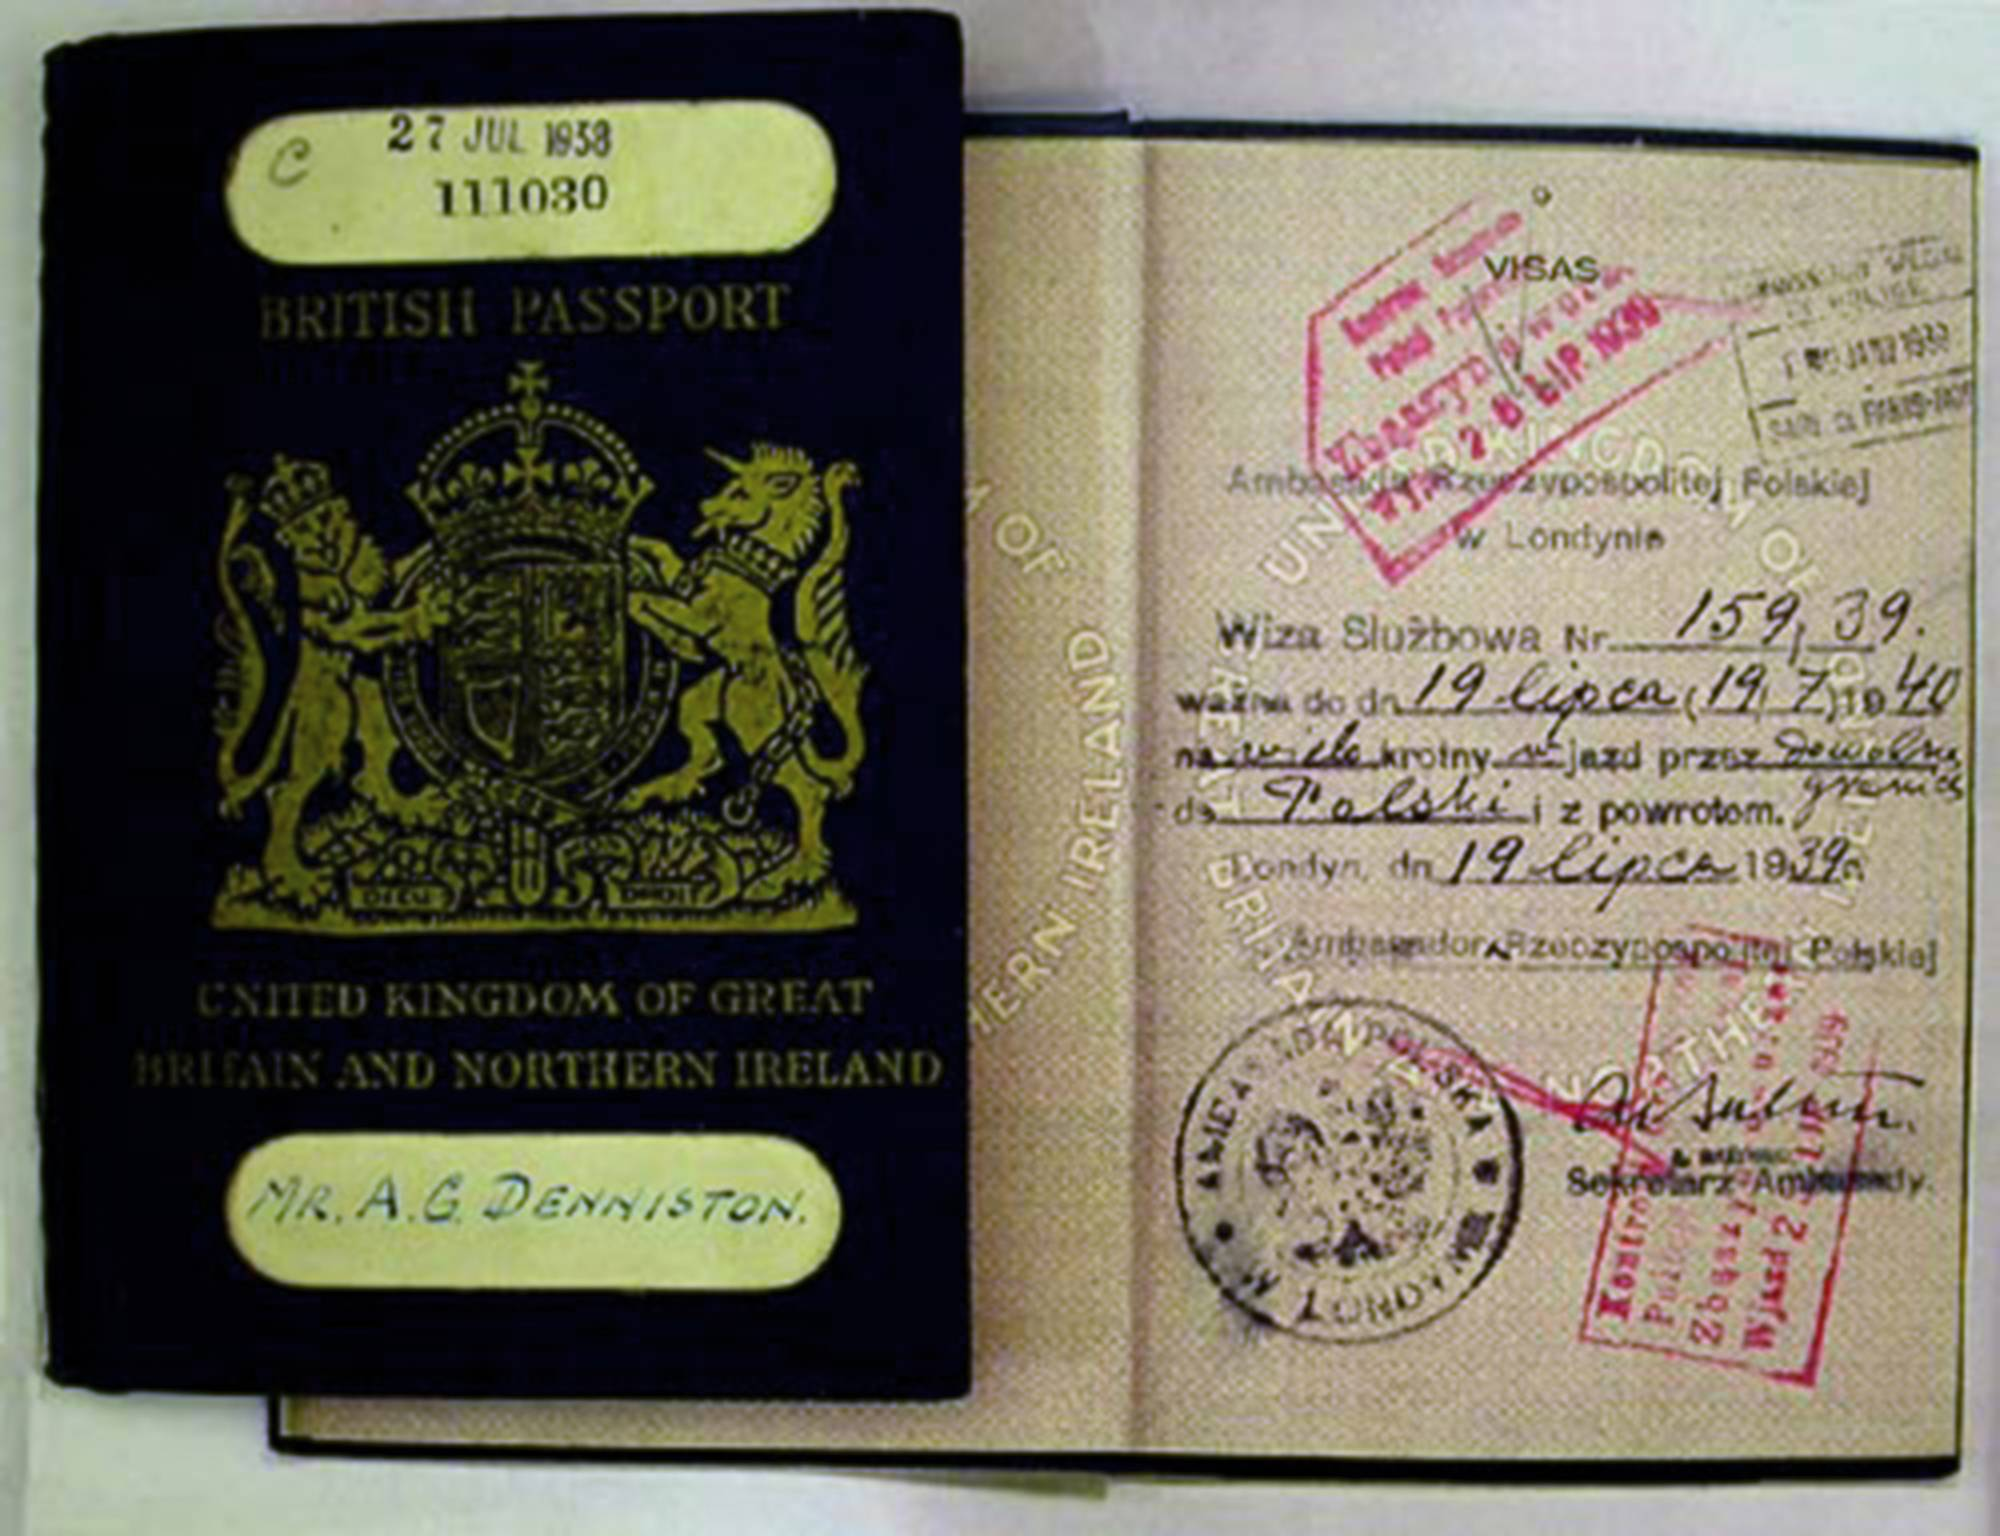 Visa in A. Denniston's passport entitling to official entry to Poland.